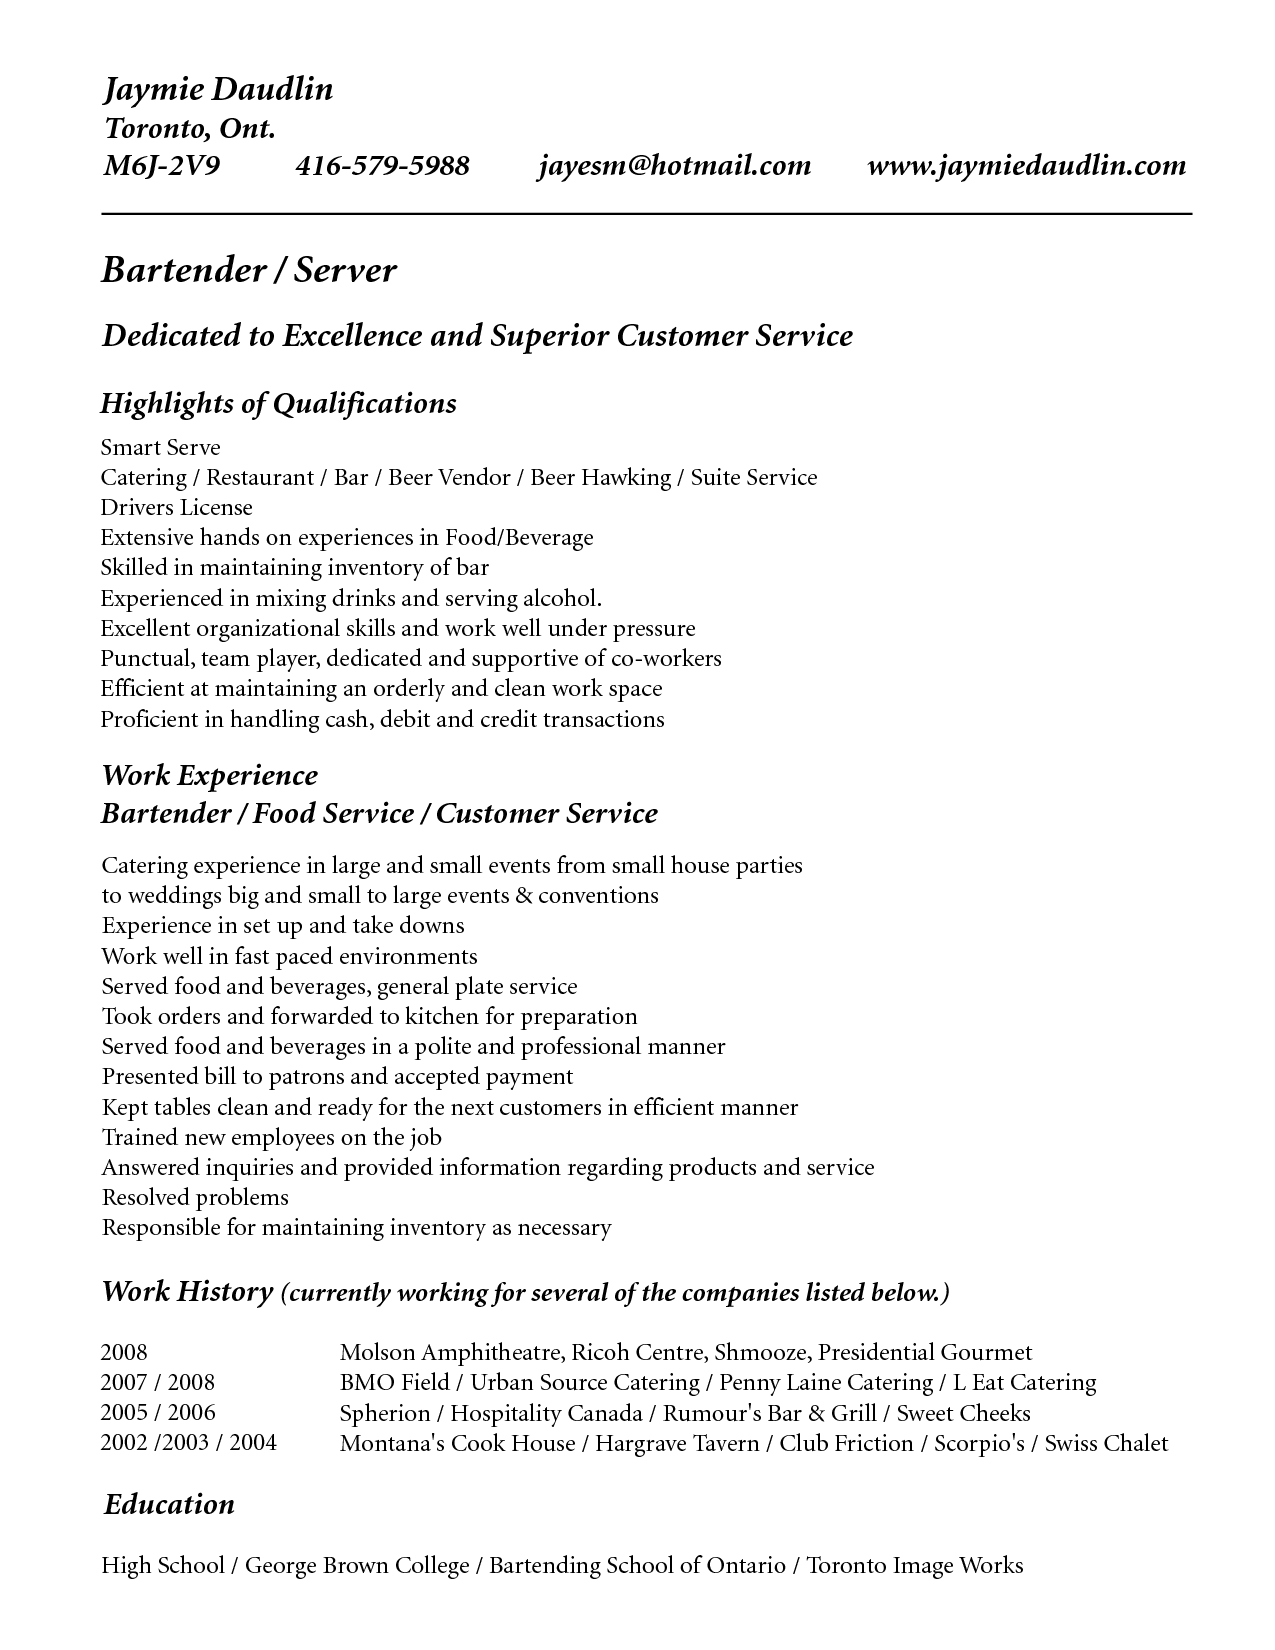 Professional Resume Builder Service Resume Template For Bartender No Experience  Httpwww